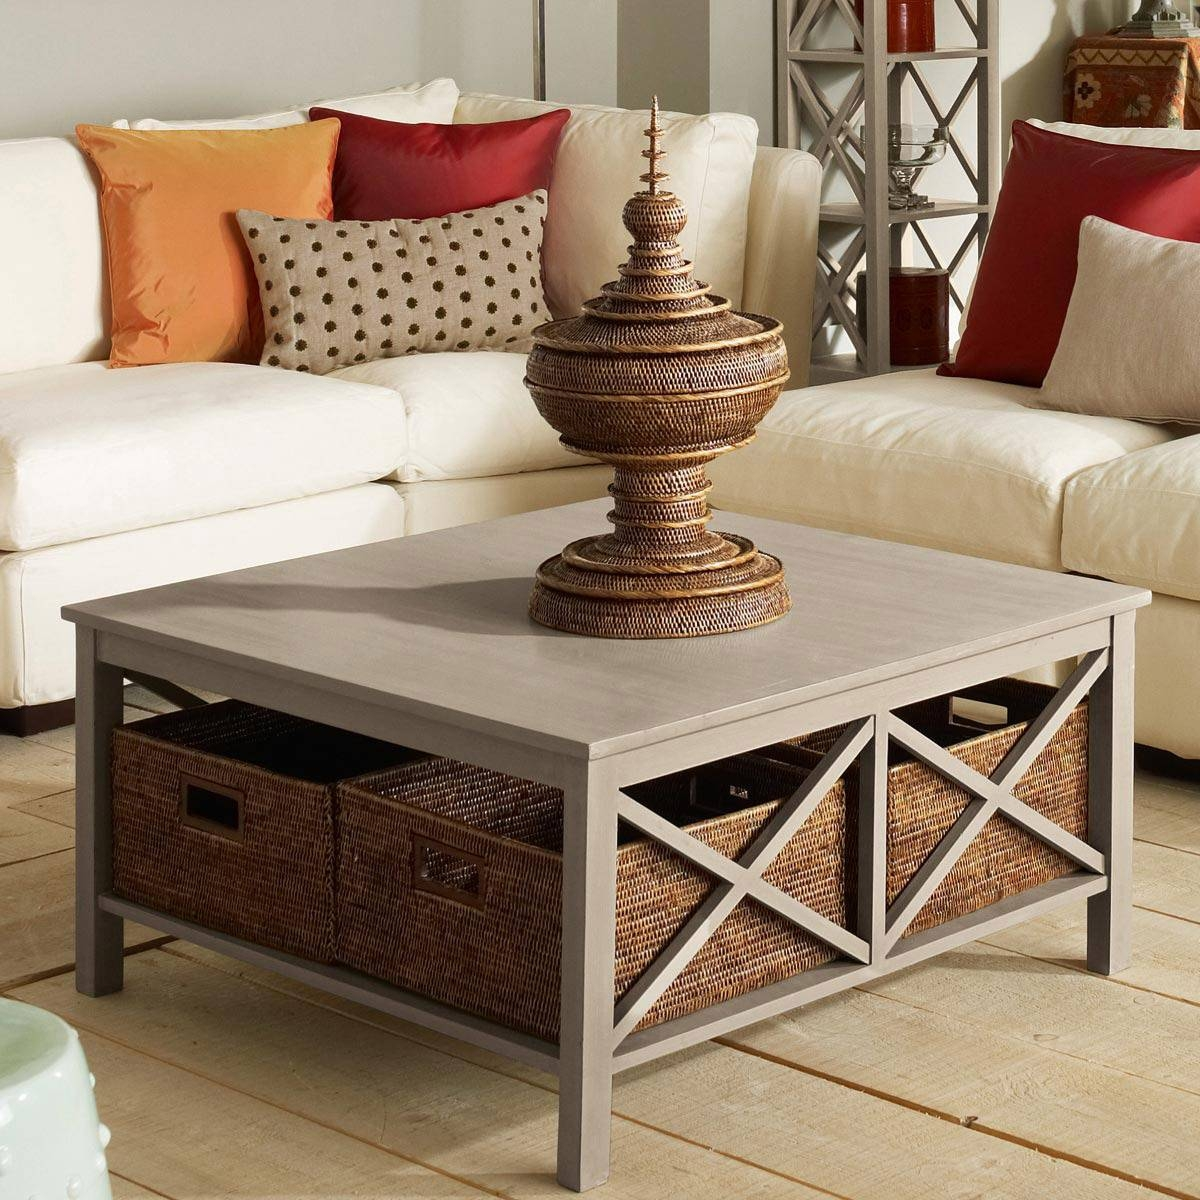 Marvelous Style Square Coffee Table With Storage – 50 Square in Coffee Tables With Baskets Underneath (Image 26 of 30)